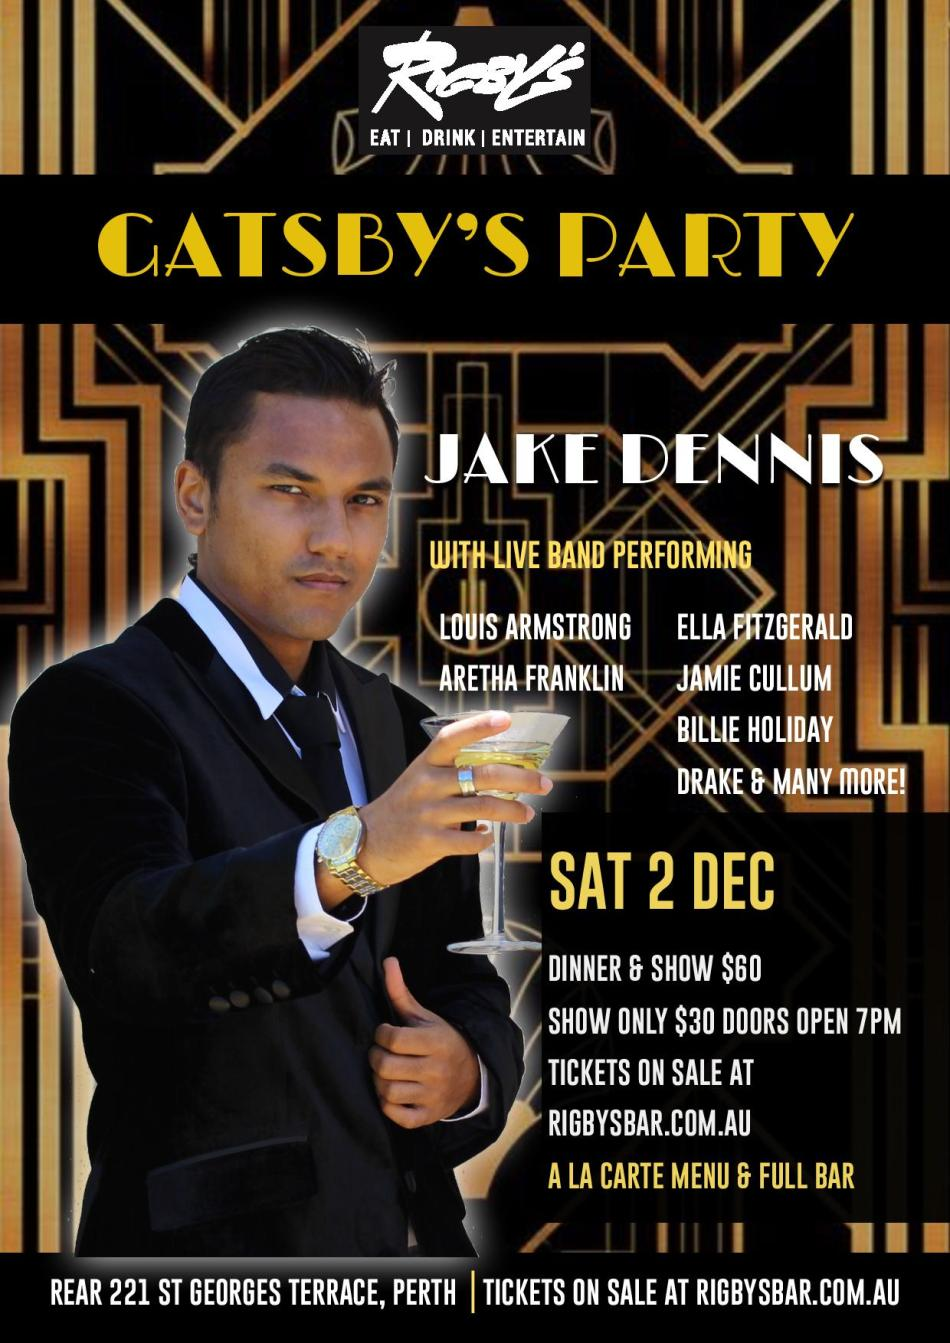 Gatsby-party-page-001